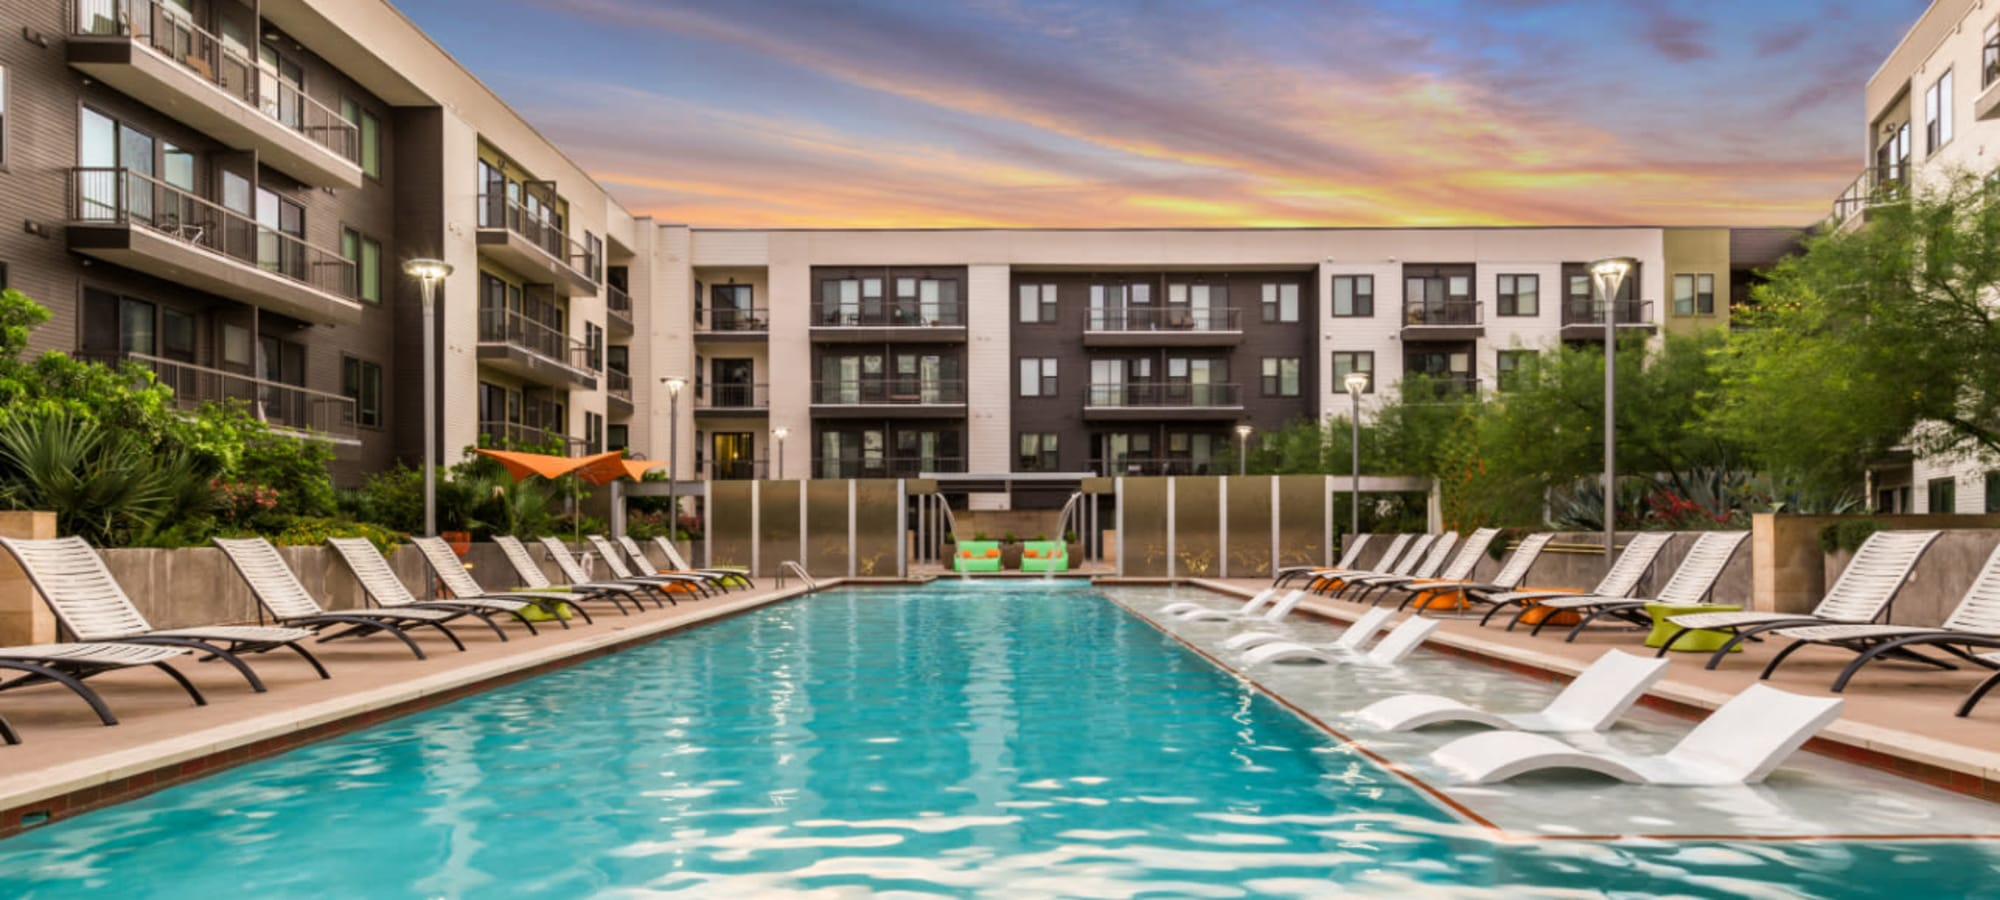 Apartments at Marq Uptown in Austin, Texas